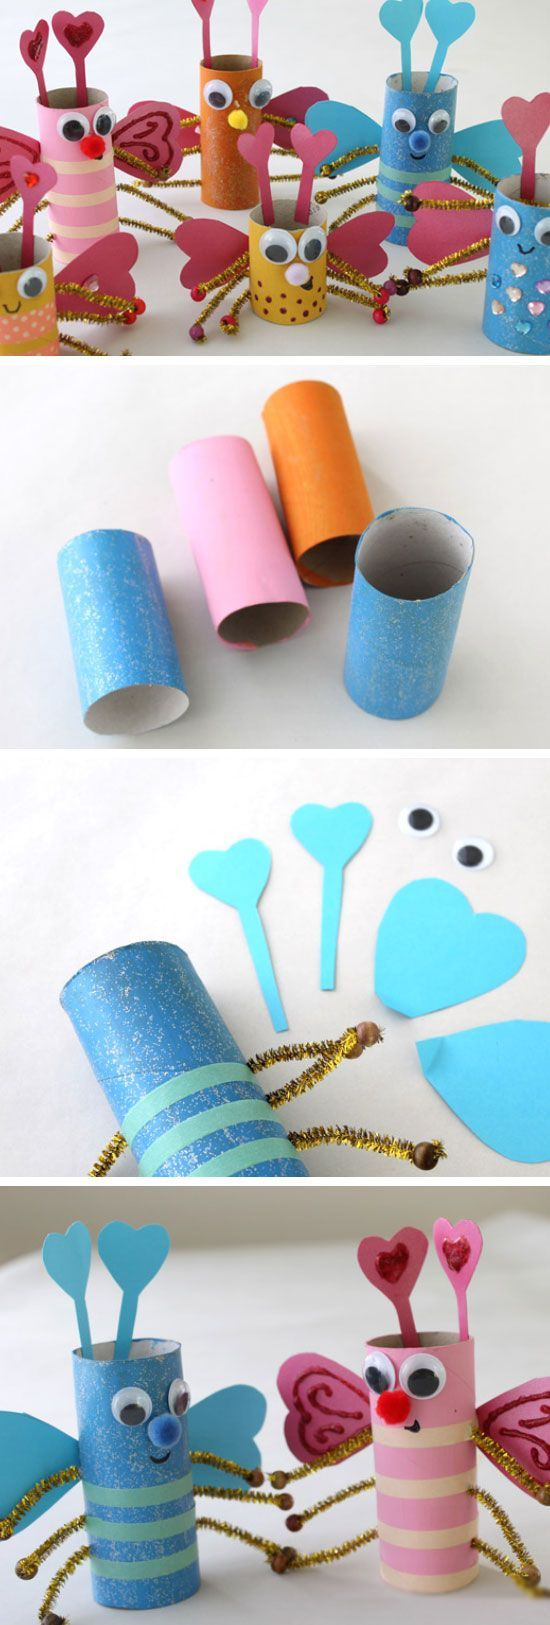 Toilet Roll Love Bugs | DIY Valentines Crafts for Kids to Make